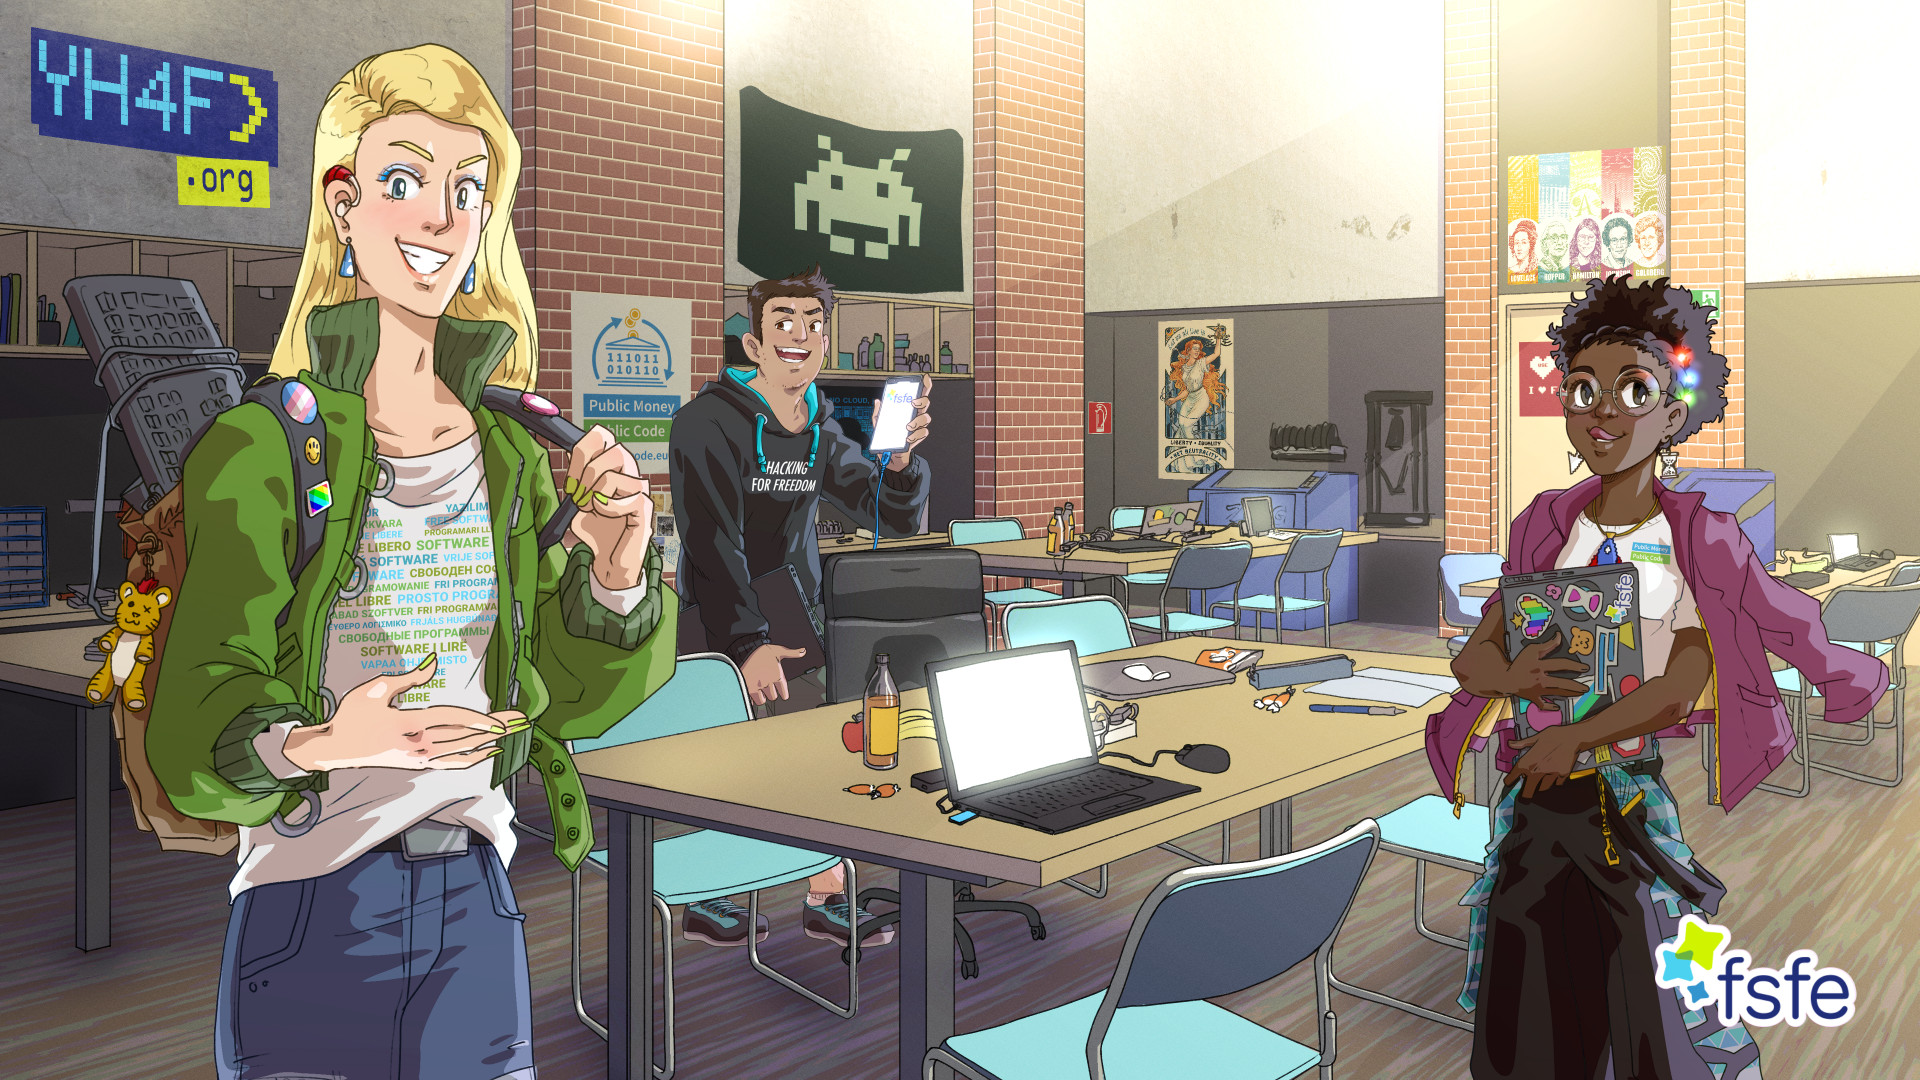 Three teenagers standing in a hackerspace